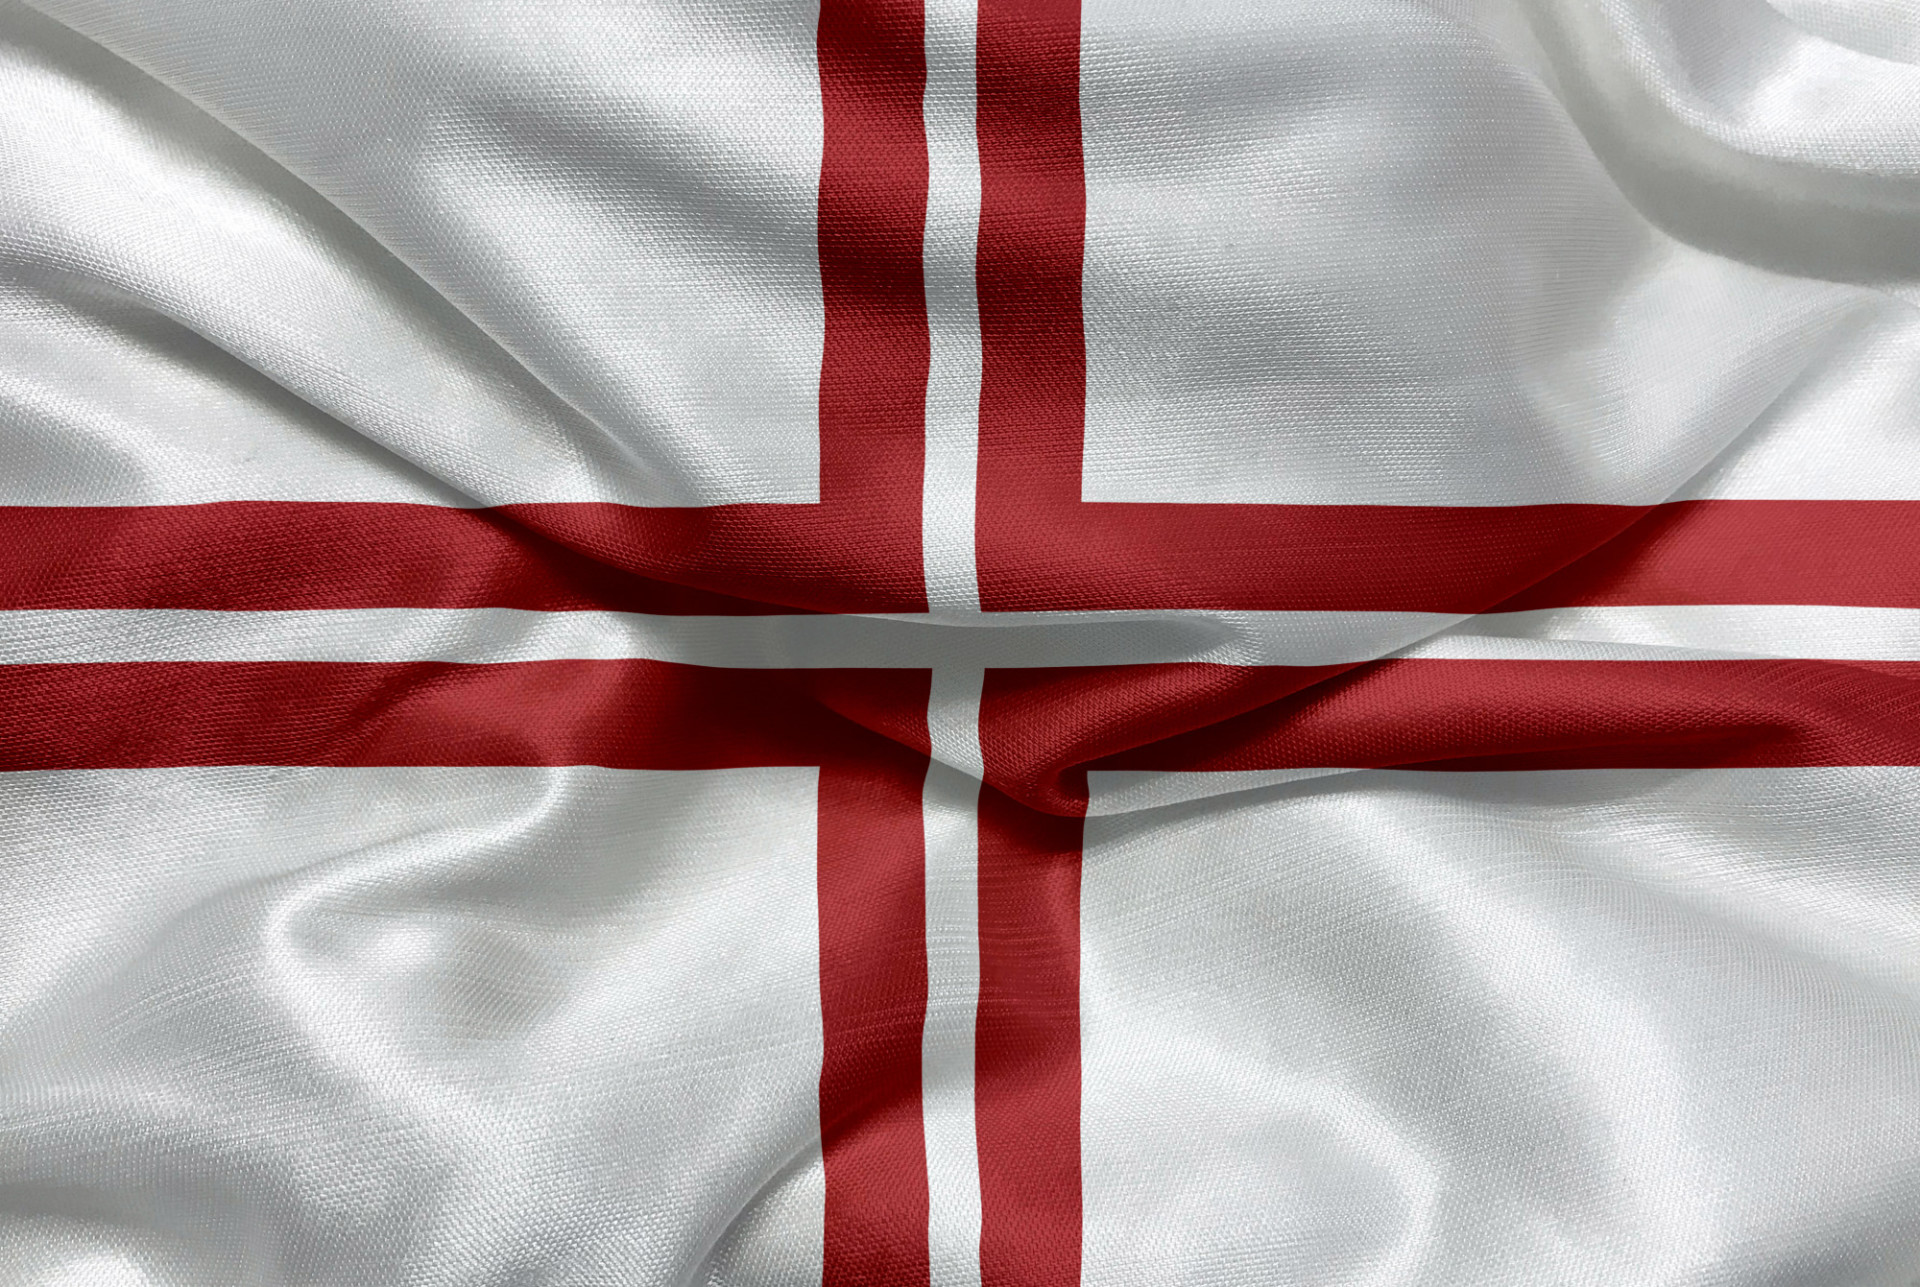 Naval Ensign of Latvia